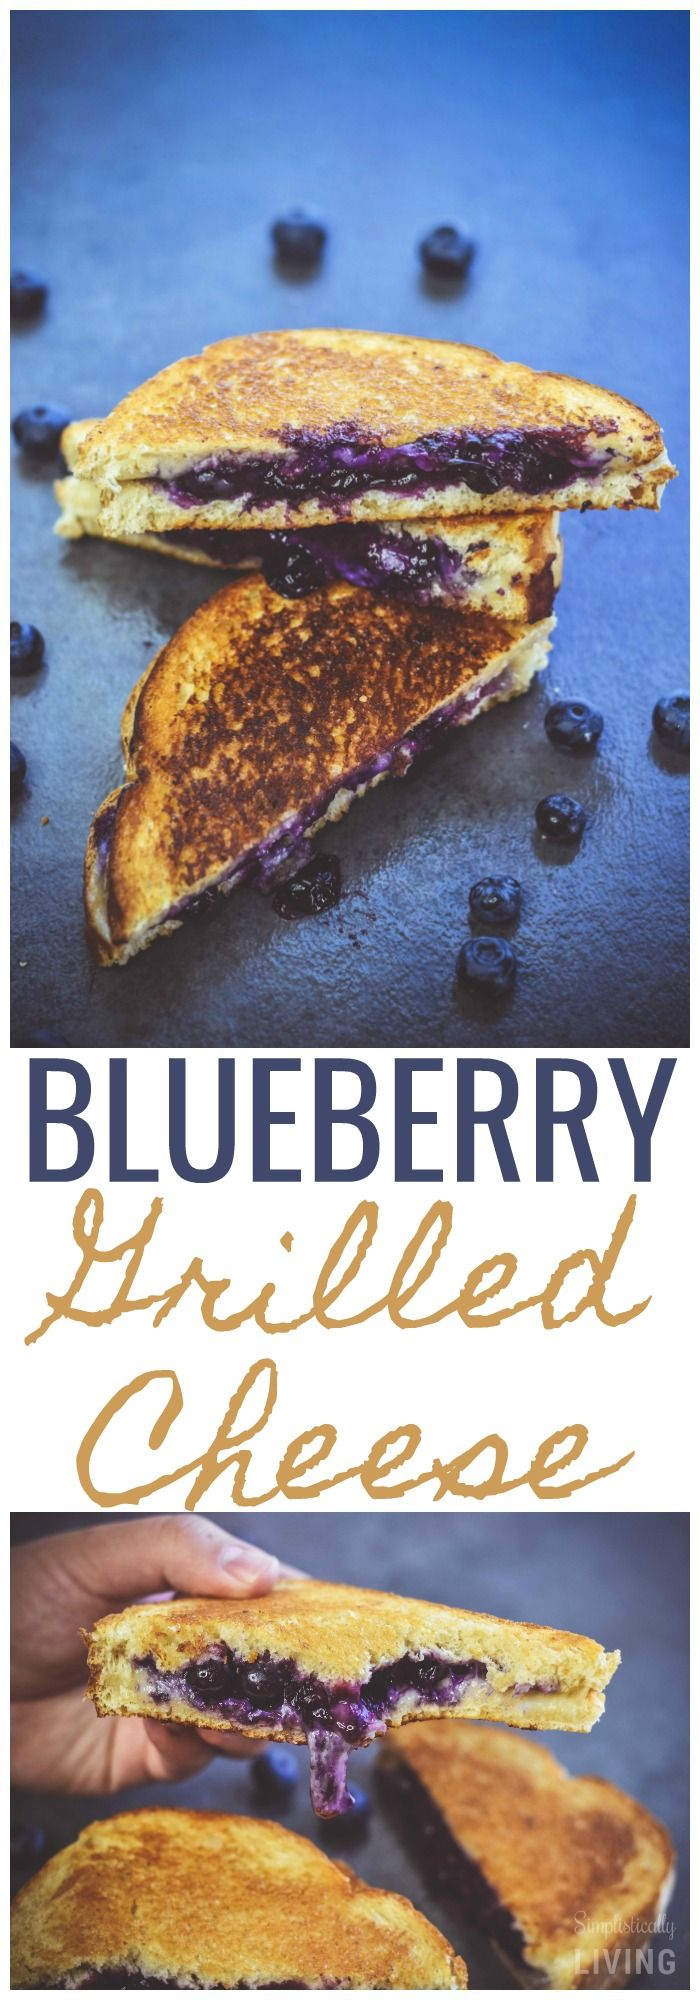 Blueberry Grilled Cheese Strangewich Simplistically Living